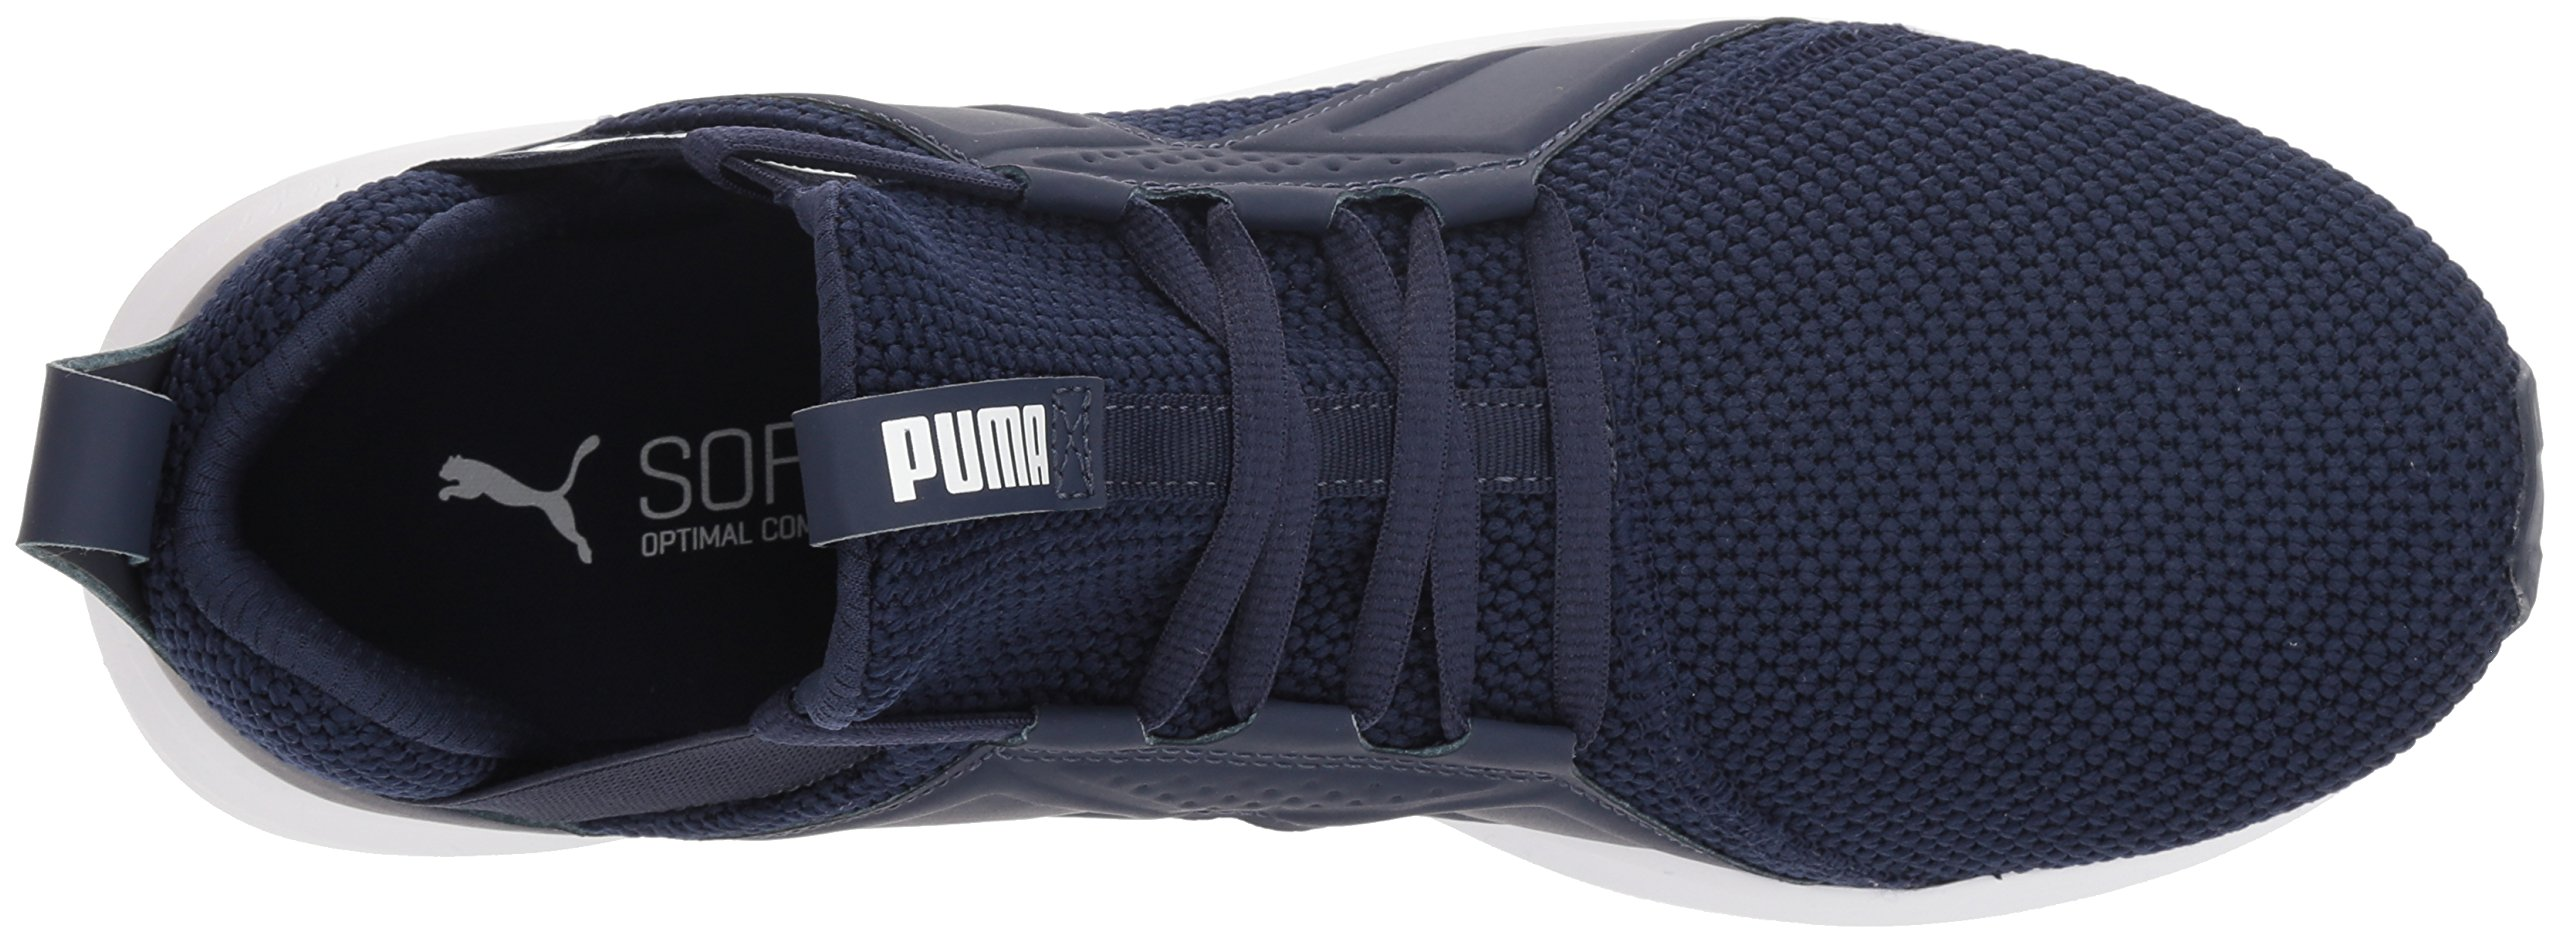 PUMA Men's Enzo Weave Sneaker, Peacoat White, 9 M US by PUMA (Image #7)